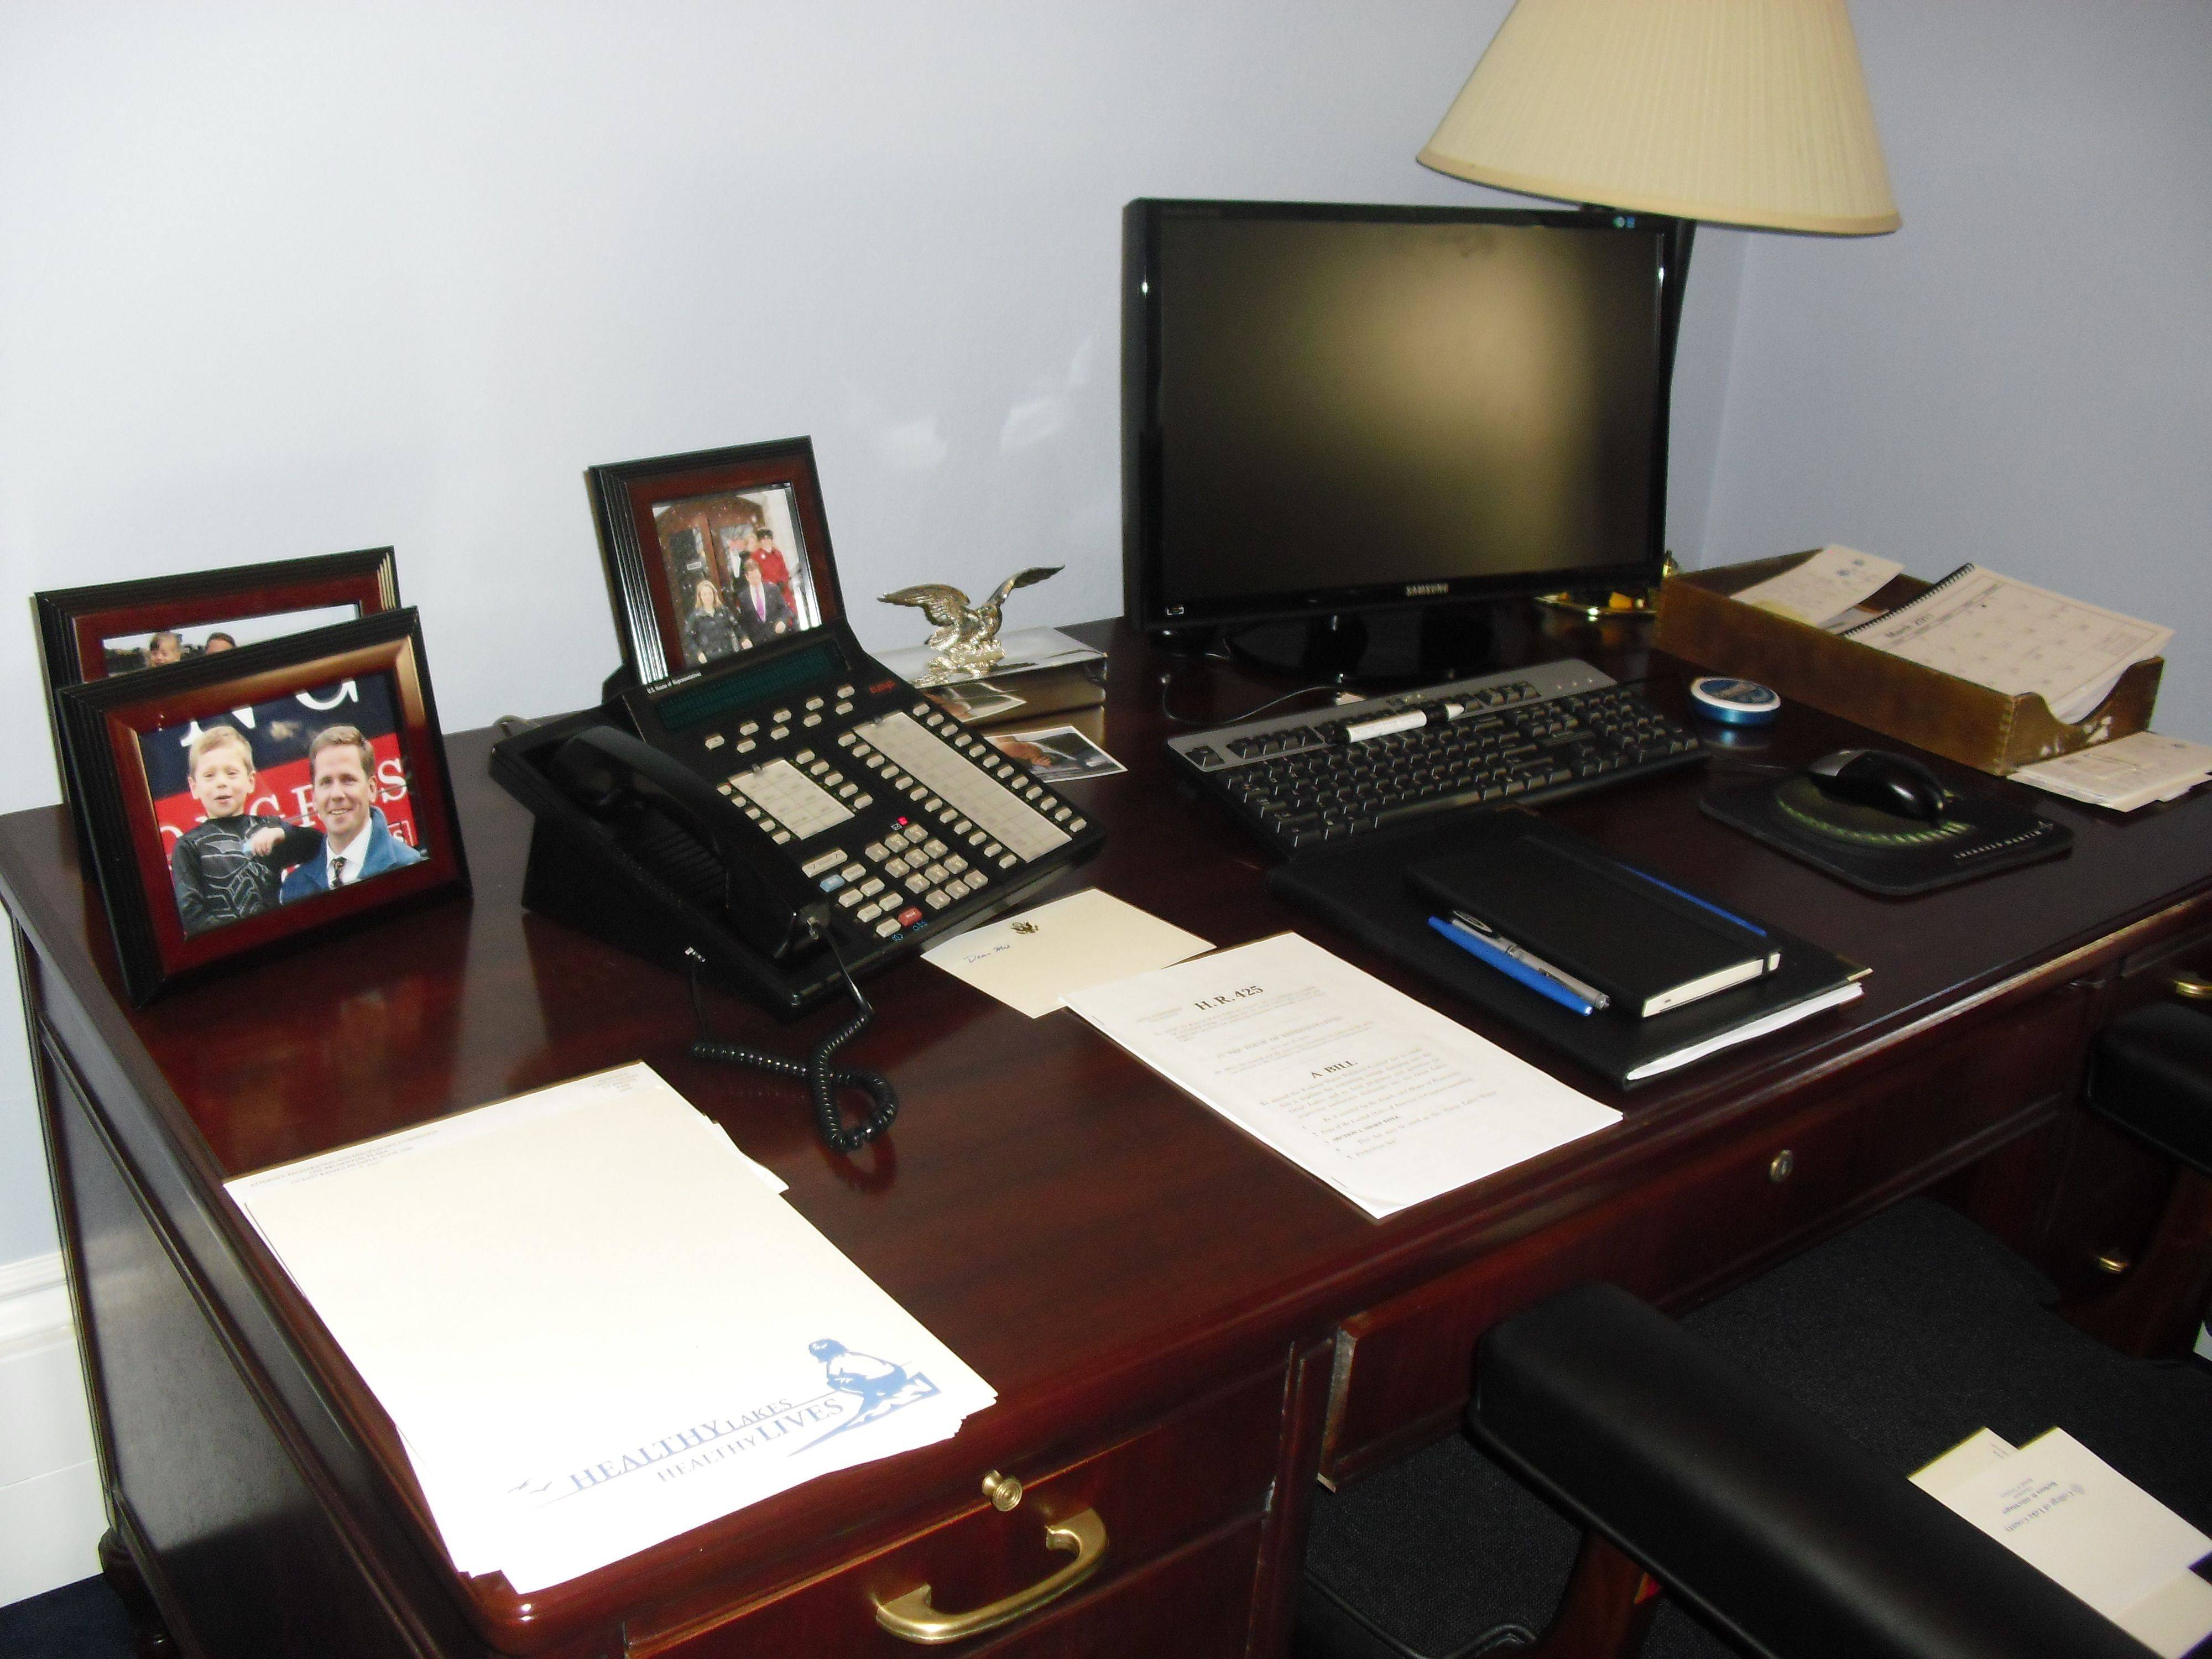 Freshman Congressman Robert Dold keeps family photos on his desk, including one of him and his son.